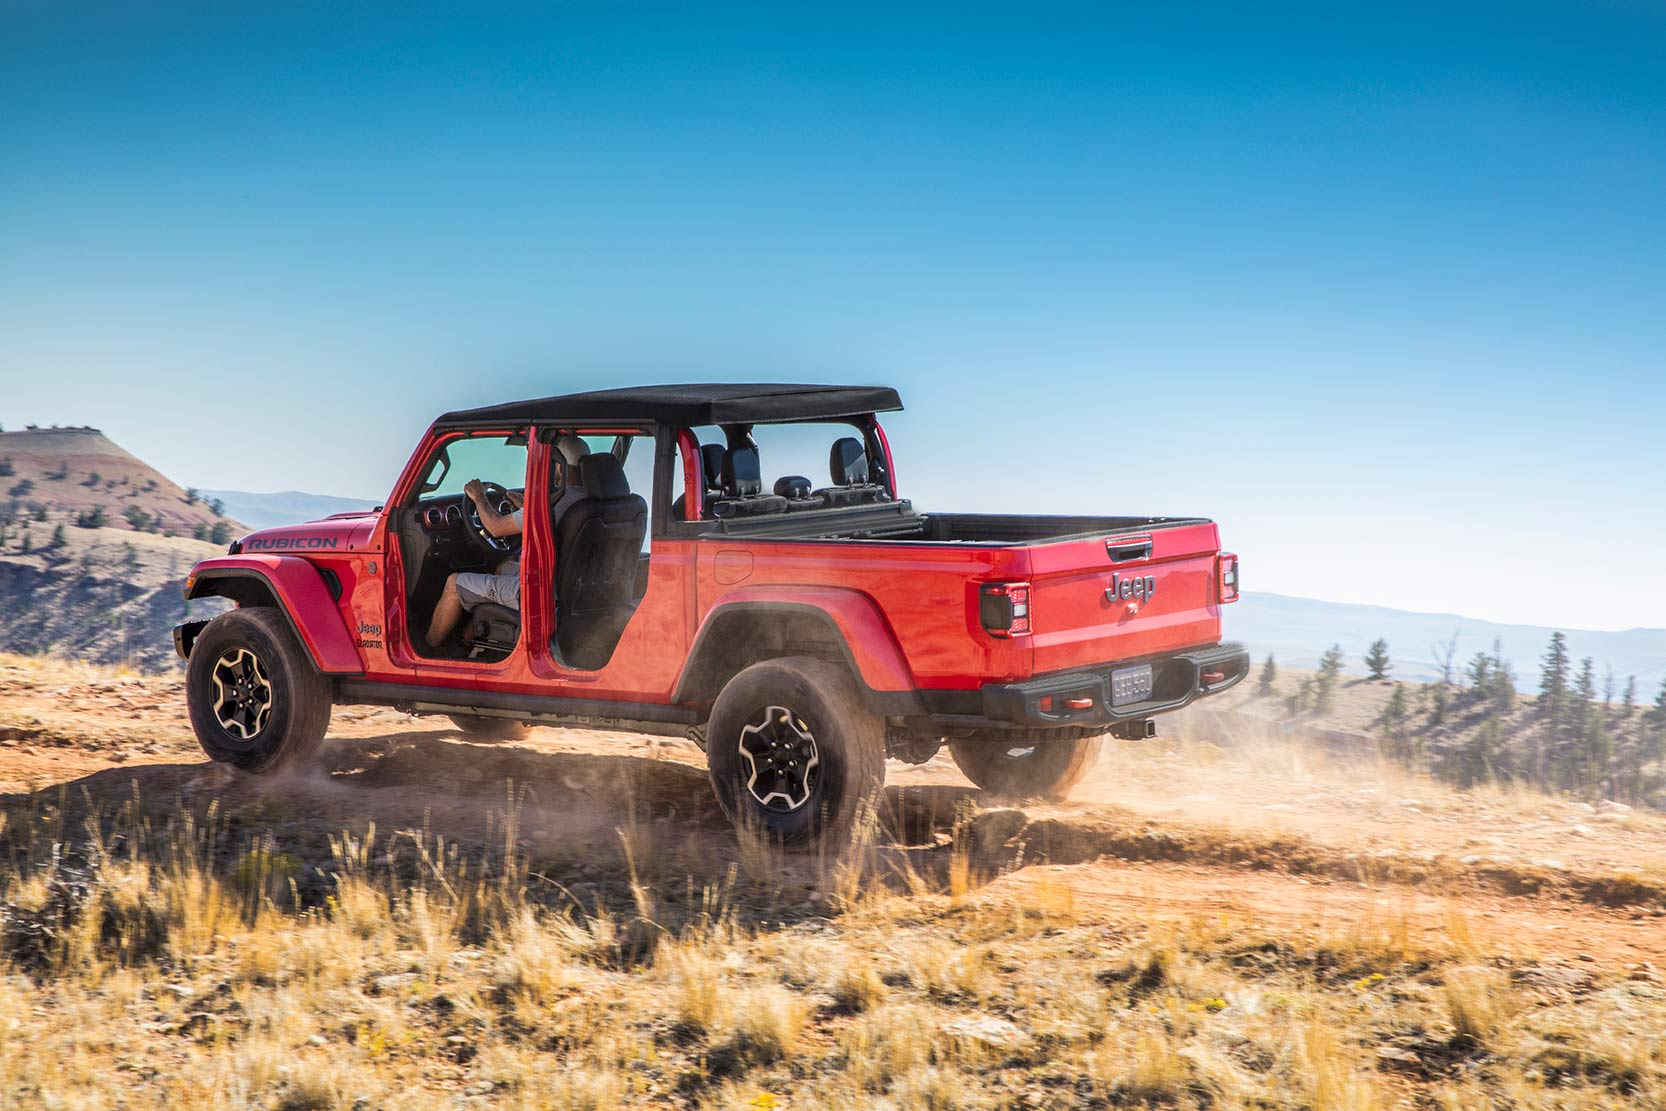 Exterieur_Jeep-Gladiator_94